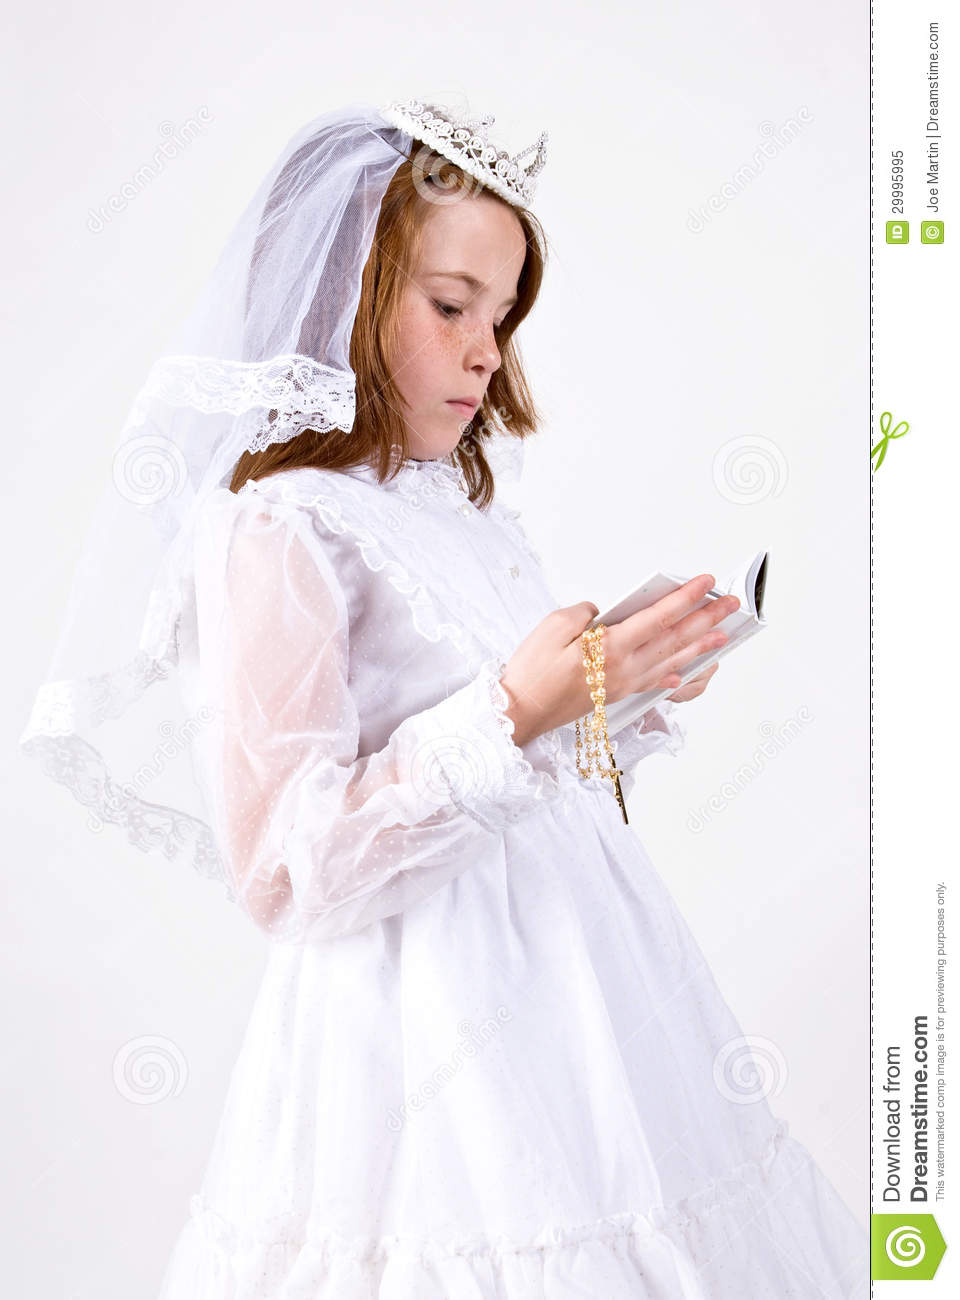 -up, from below, of a young girl smiling in her First Communion Dress